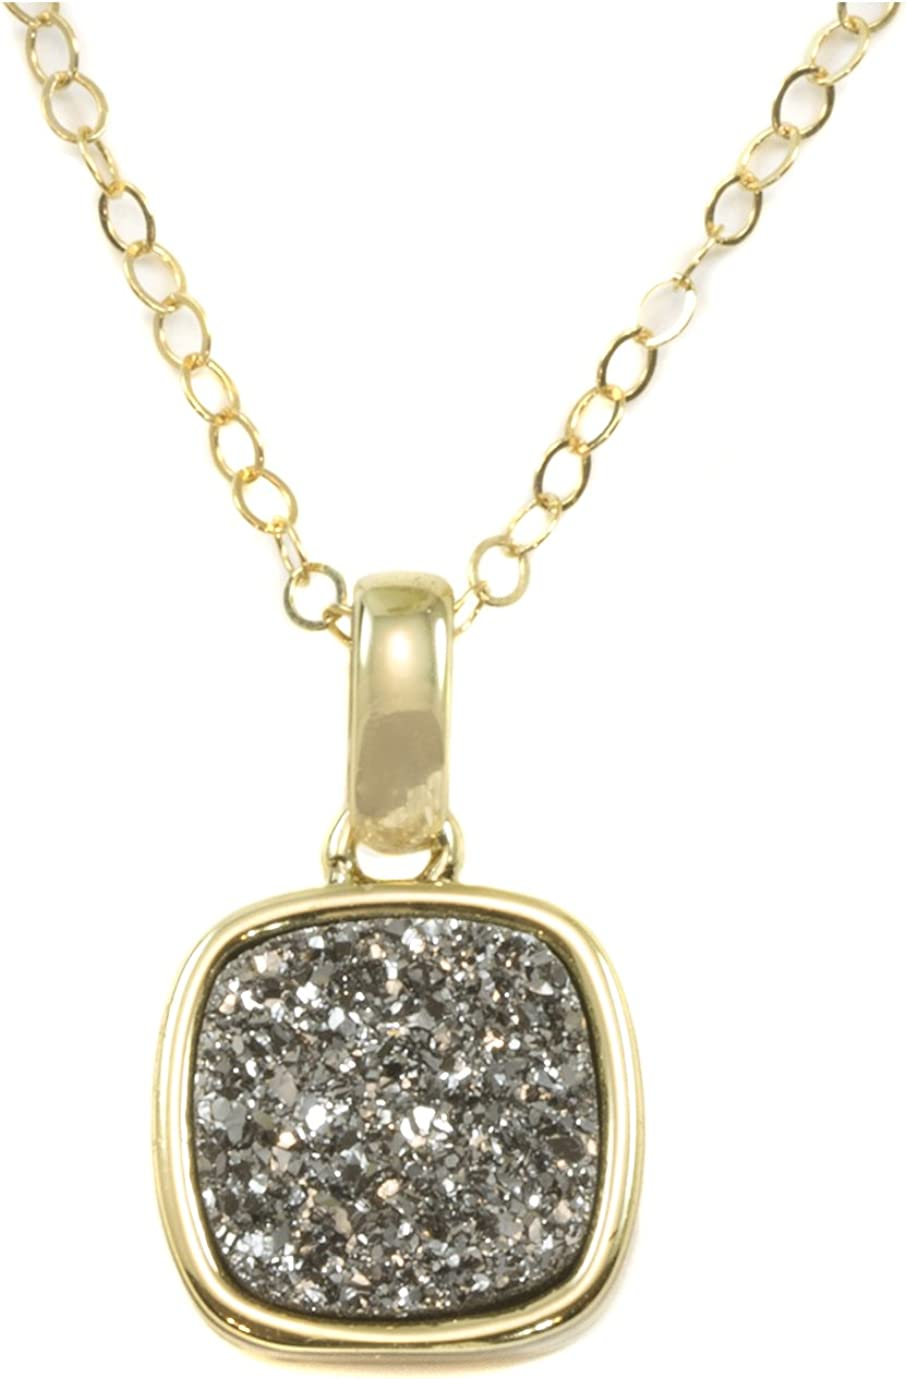 Spyglass Designs 14k Gold Filled Drusy Pendant Necklace Silvery Druzy Goldtone Thick Bezel Small Dainty 20